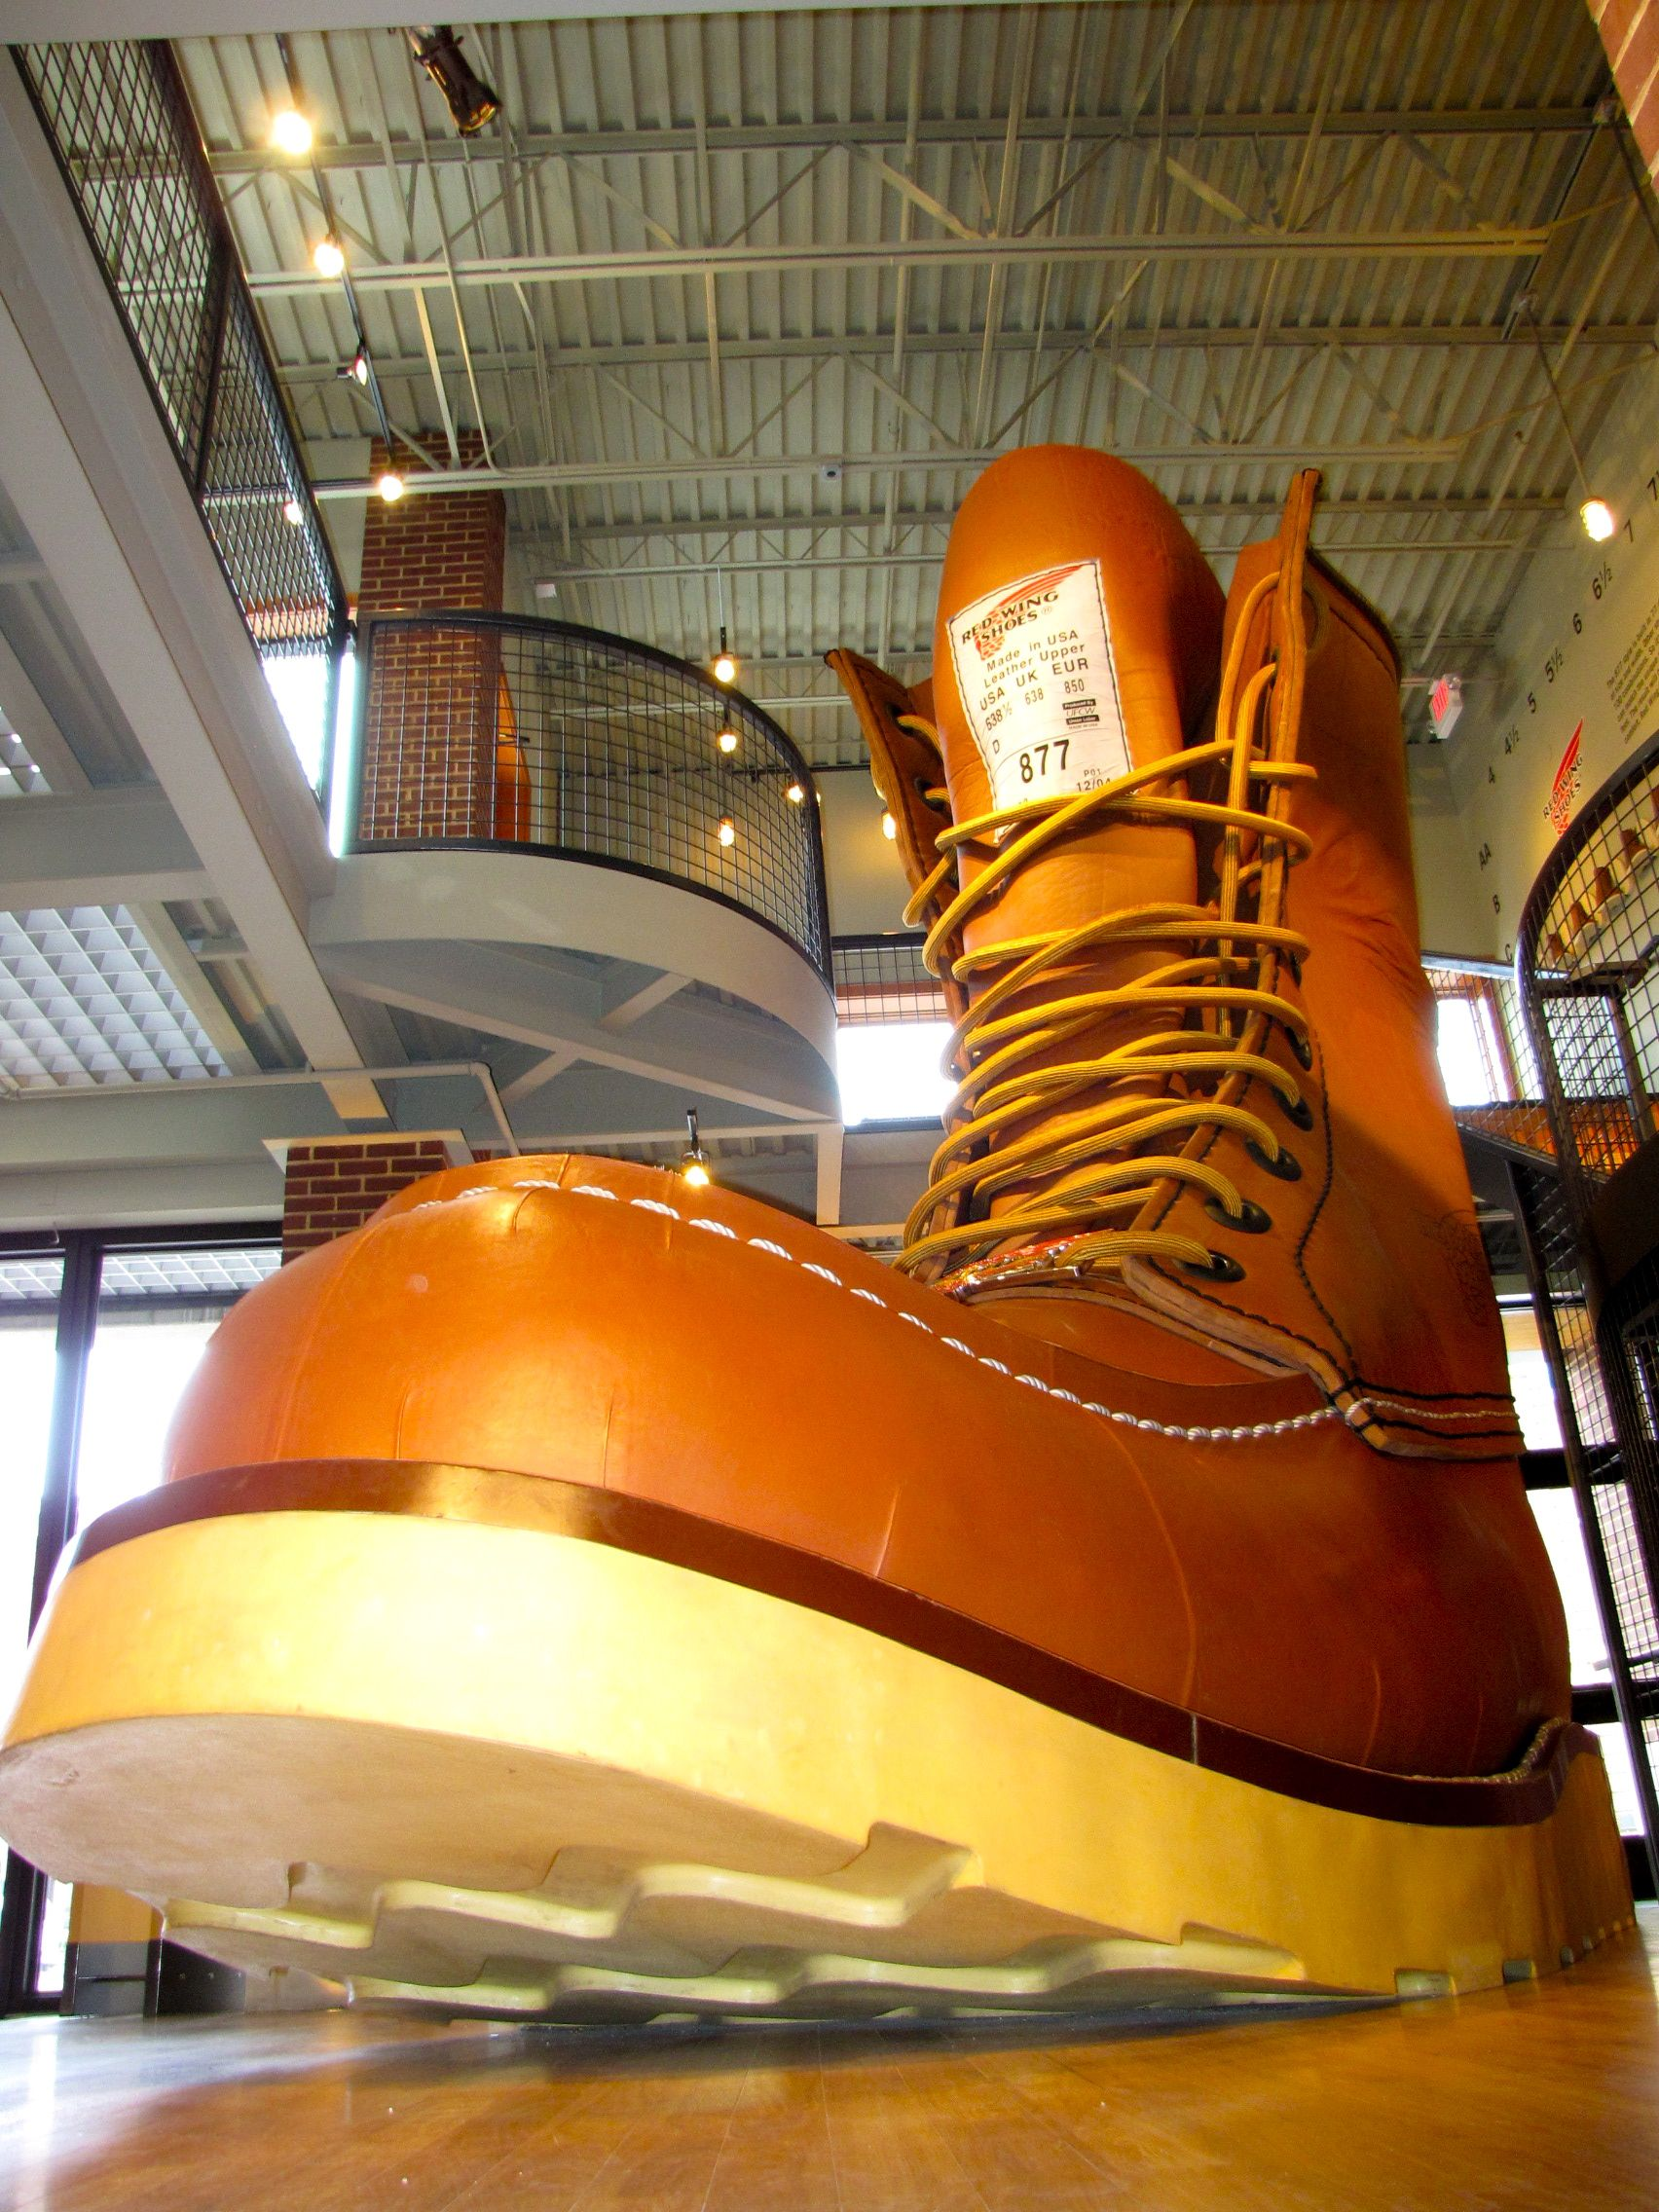 Giant boot at Red Wing Shoe Company Museum and Store. Photo by Lisa Meyers McClintick.